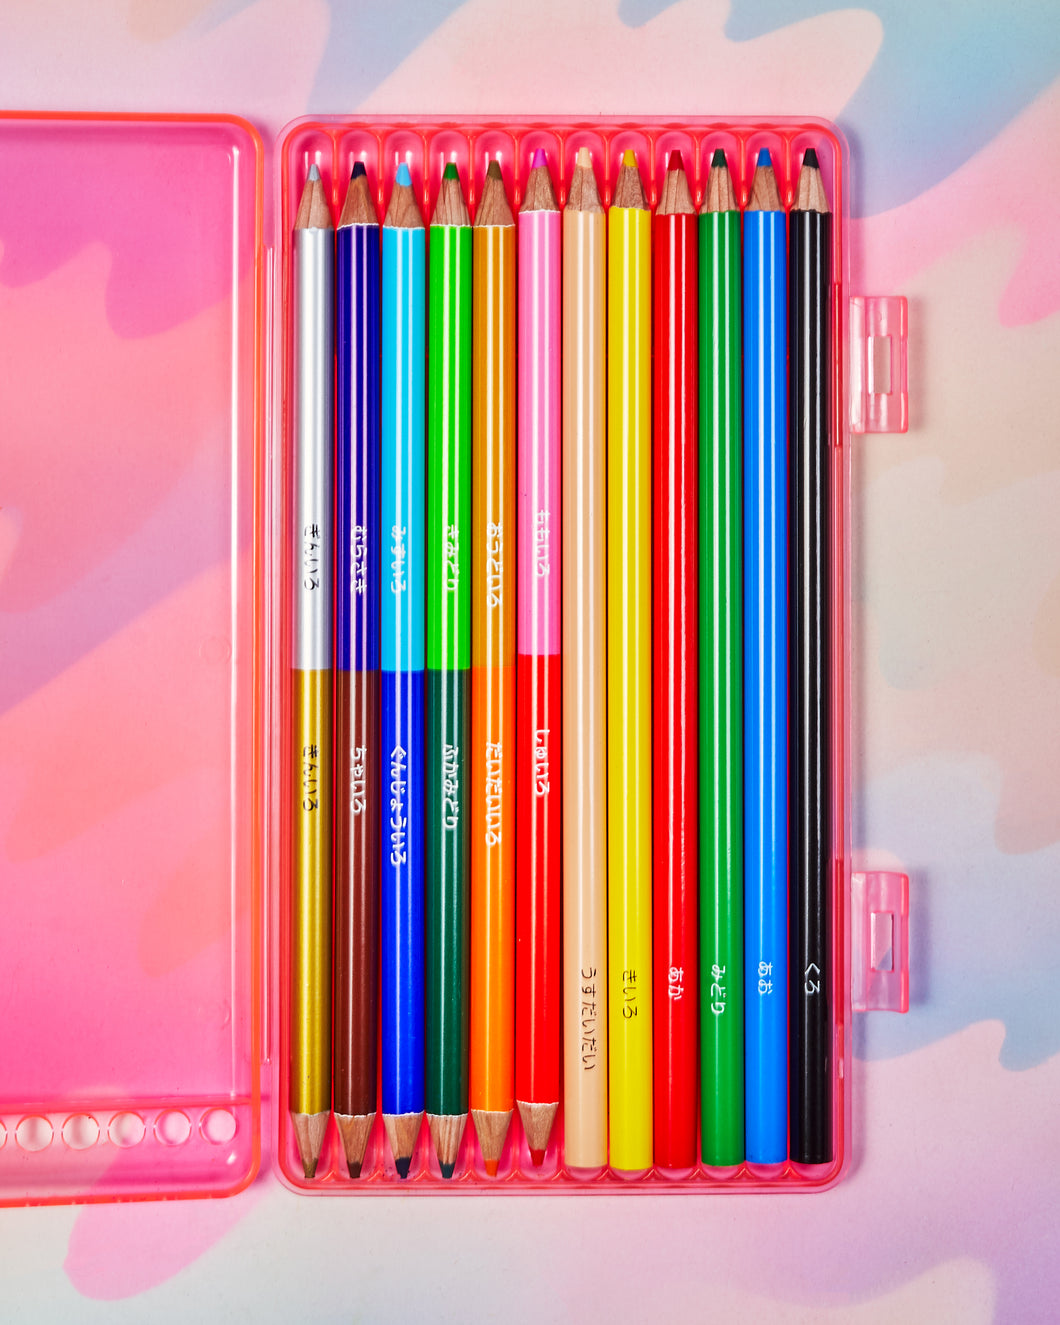 Kutsuwa Colored Pencil Set